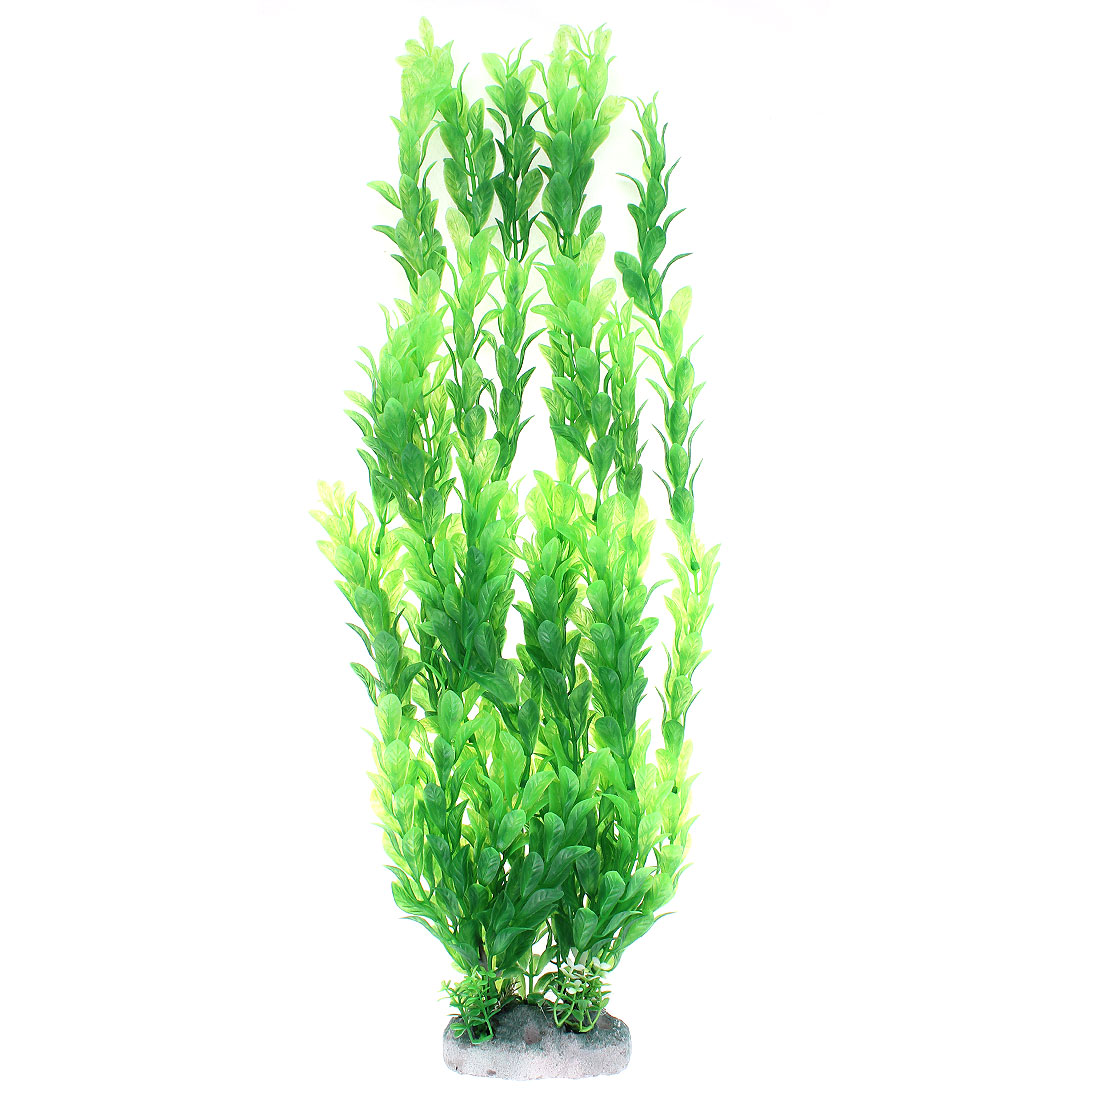 Plastic Manmade Water Plant Grass Green 46cm Height for Aquarium